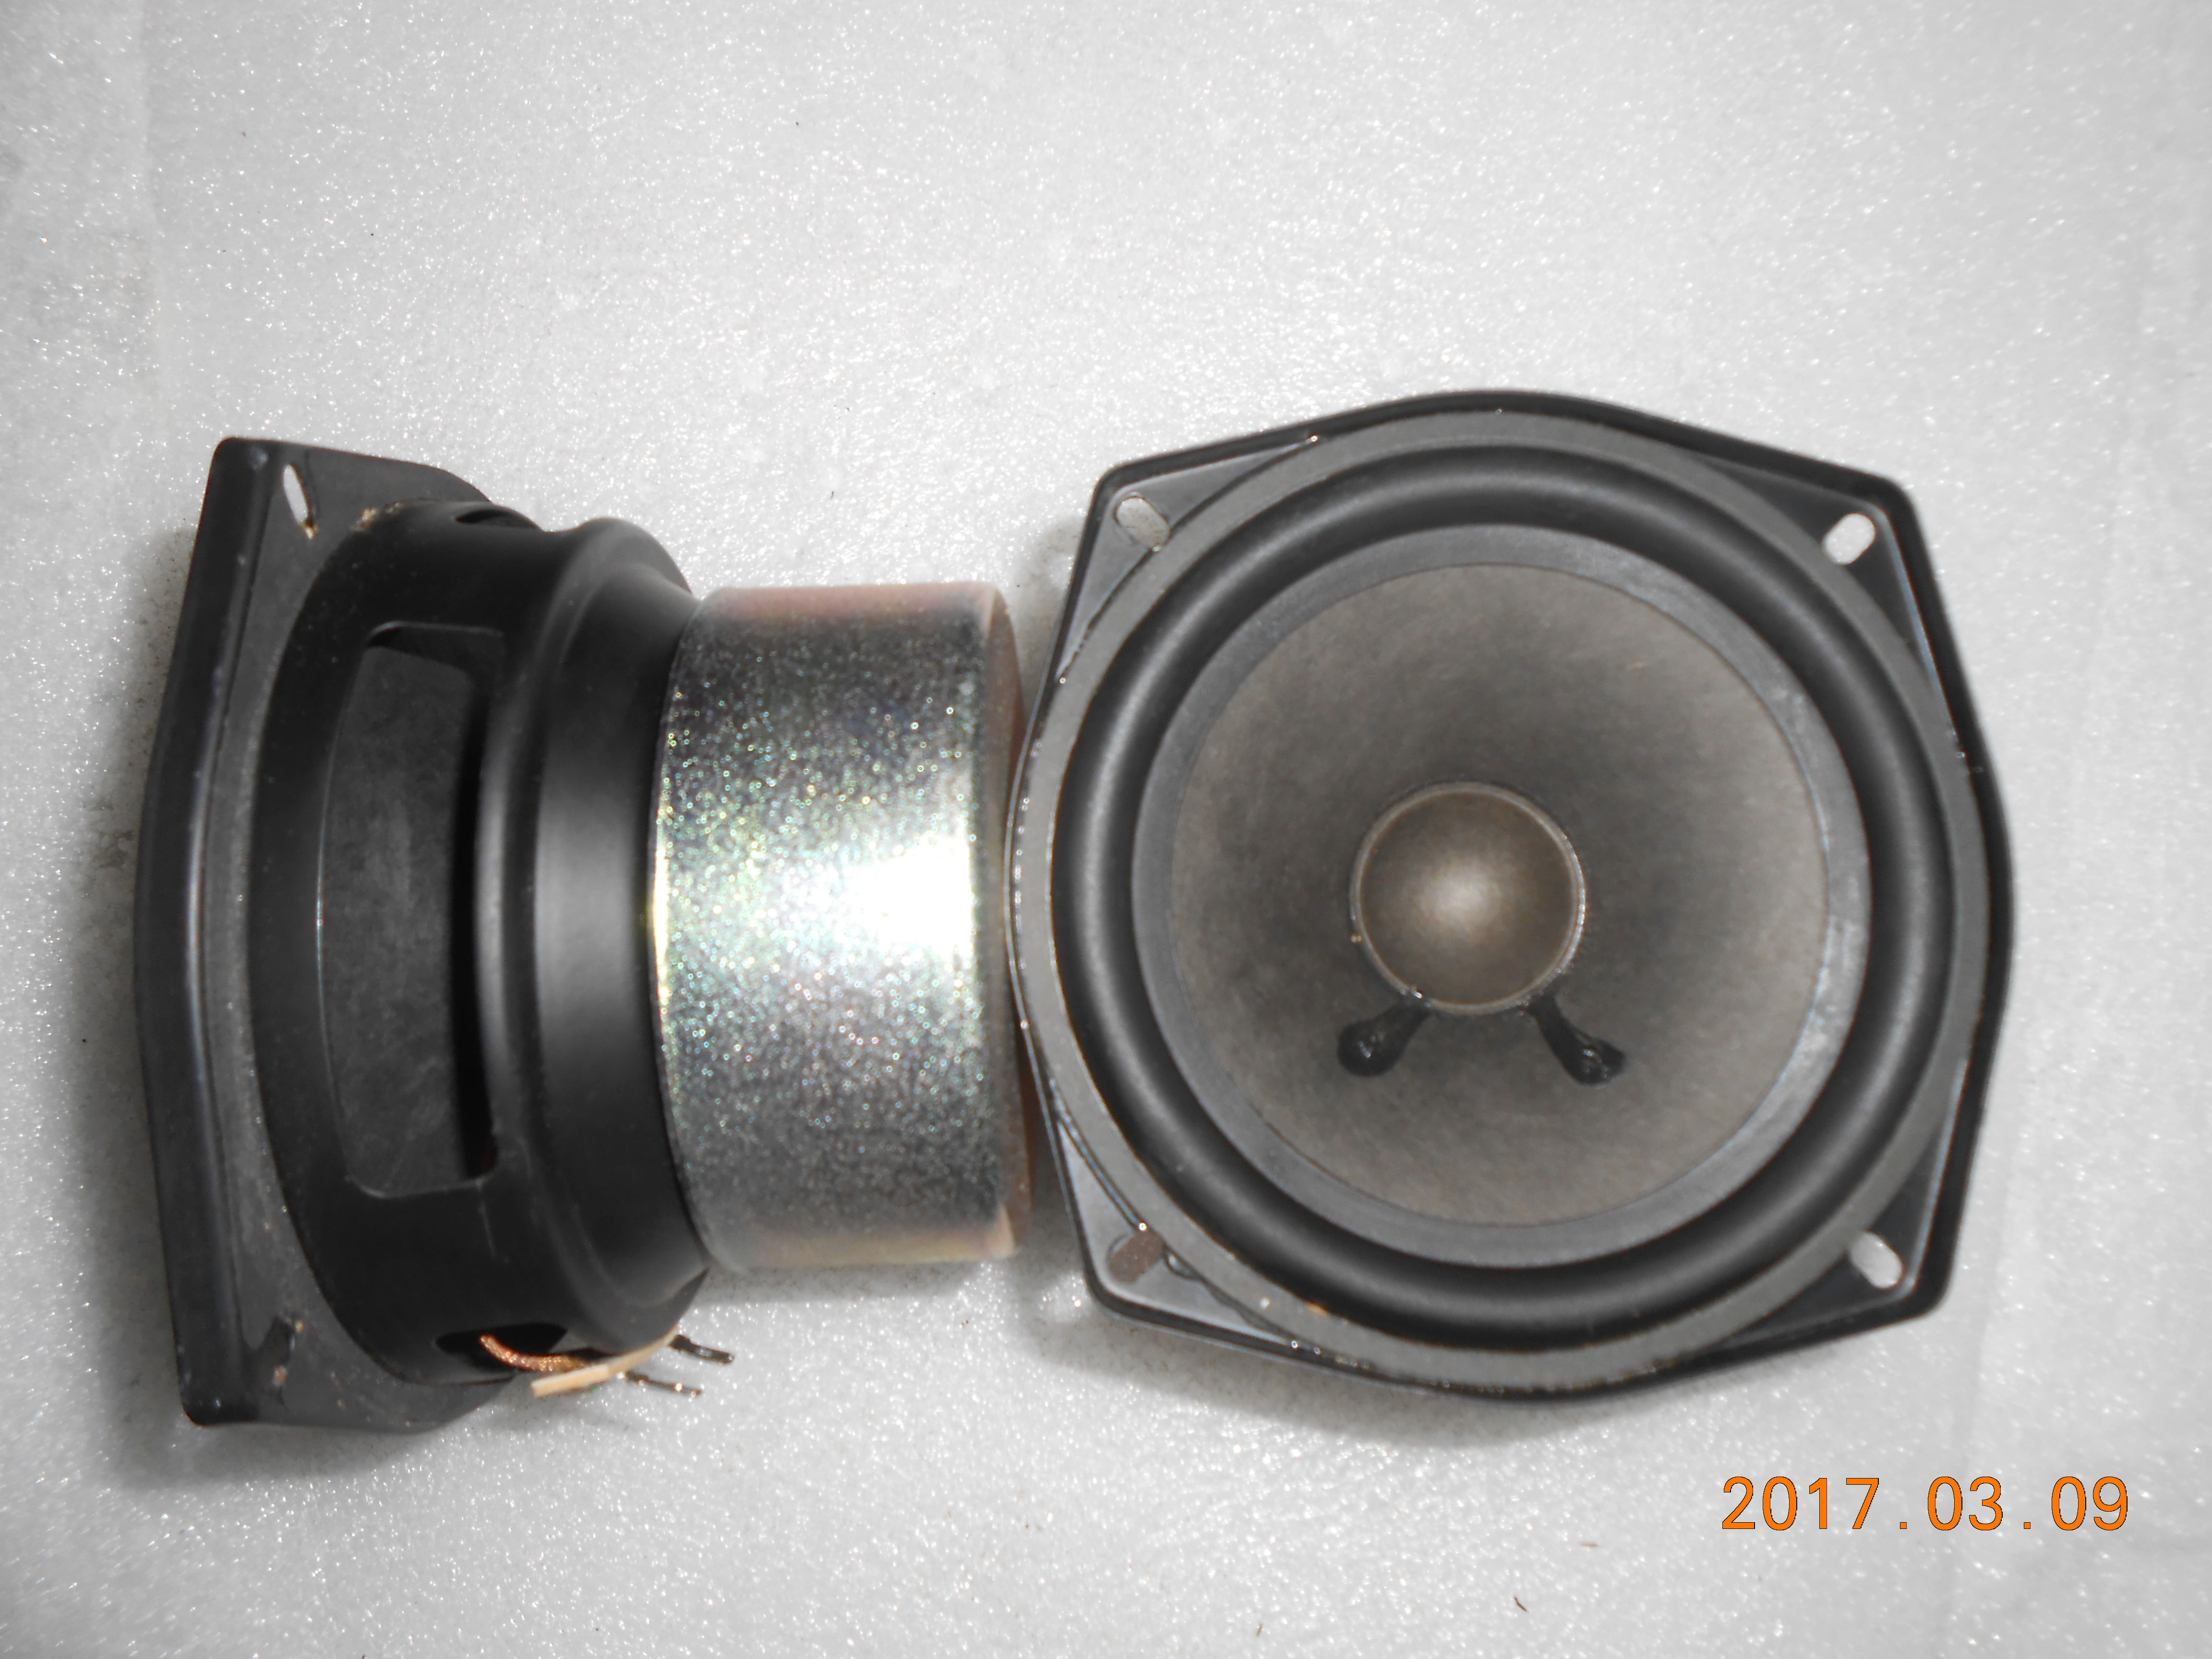 The high-end Hitachi 4.5 inch rear projection TV disassemble horn bass sound DIY horn